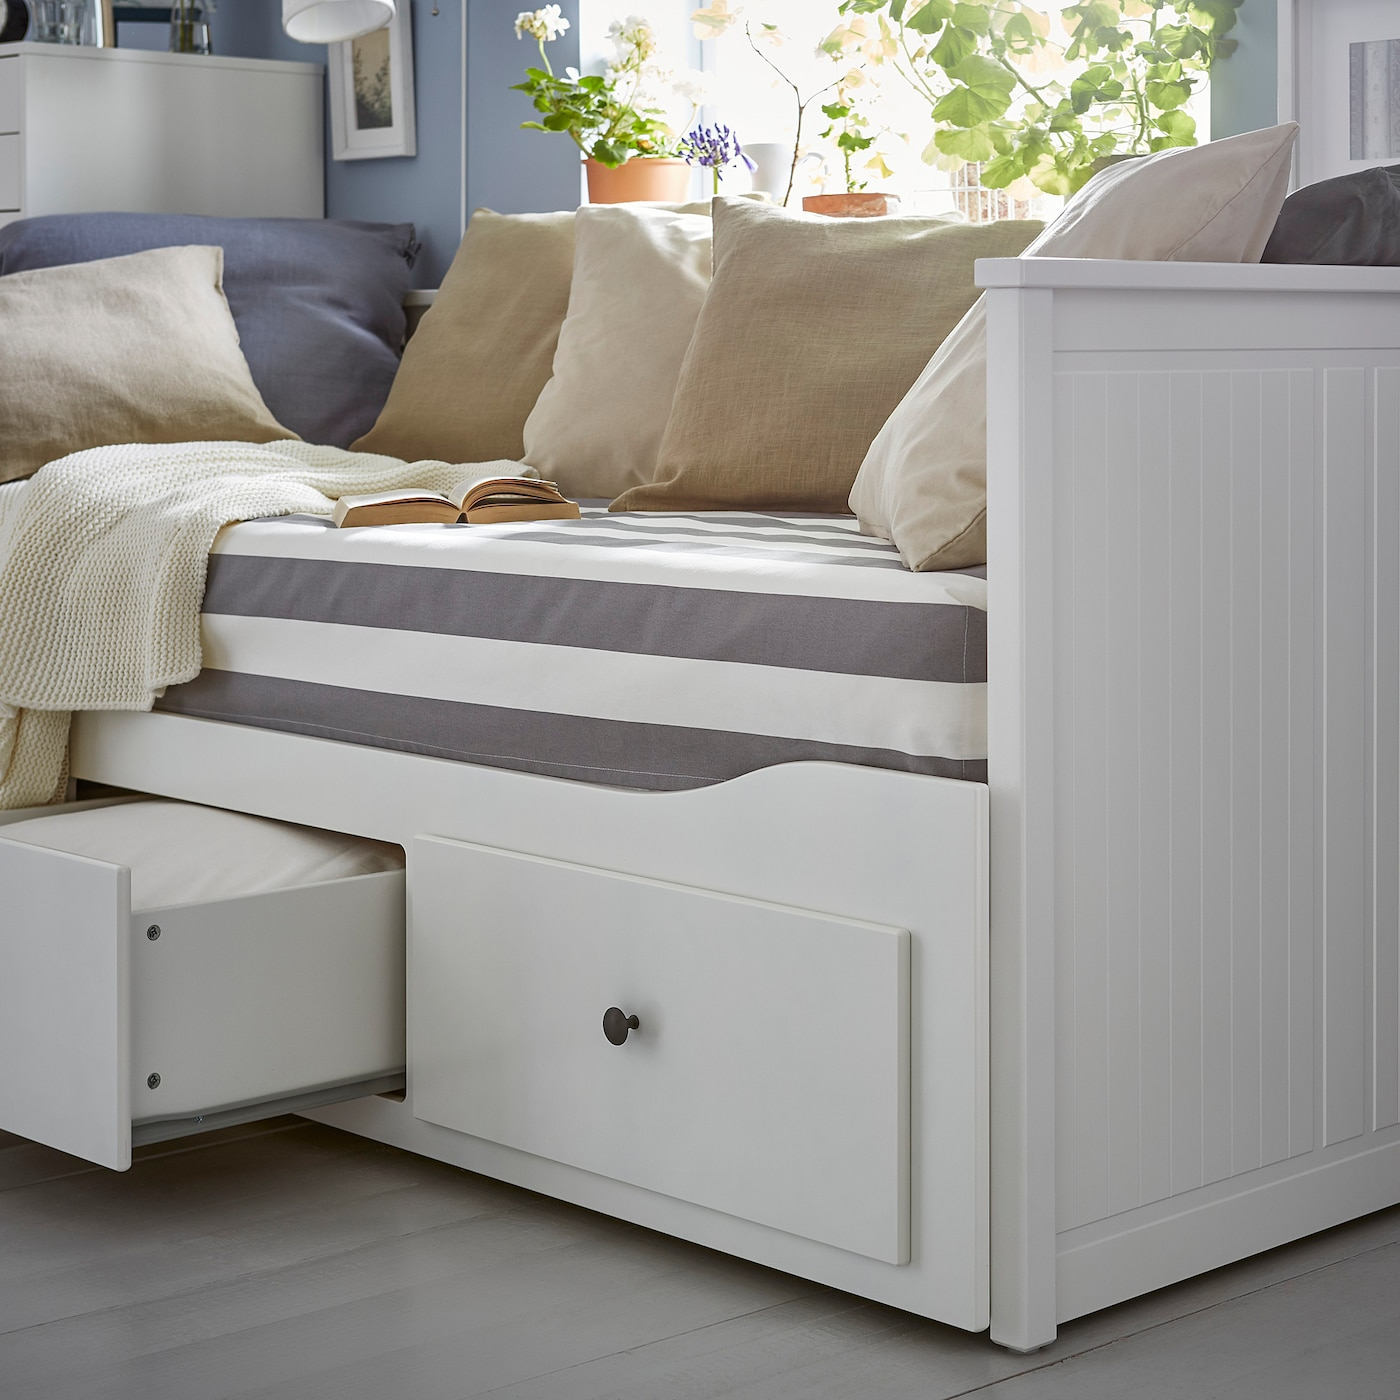 Slaapbank Hemnes Ikea.Hemnes Day Bed Frame With 3 Drawers White Ikea